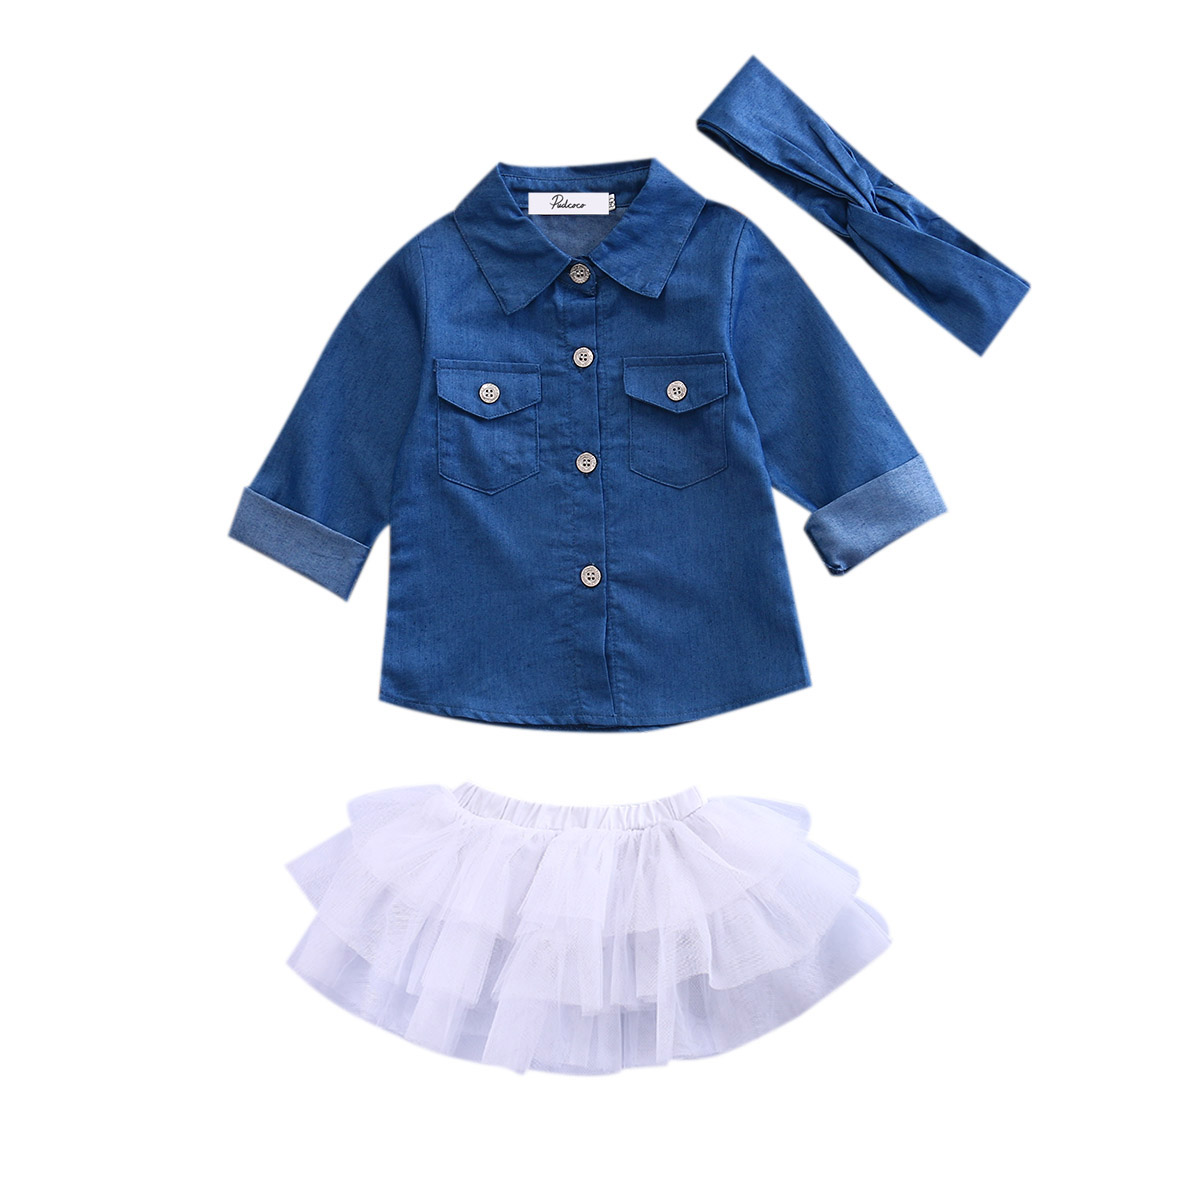 все цены на Toddler Kids Baby Girl Clothes Set Denim Tops Shirt Tutu Skirts Ruffles Cute Party 3pcs Outfits Clothing Set Girls онлайн